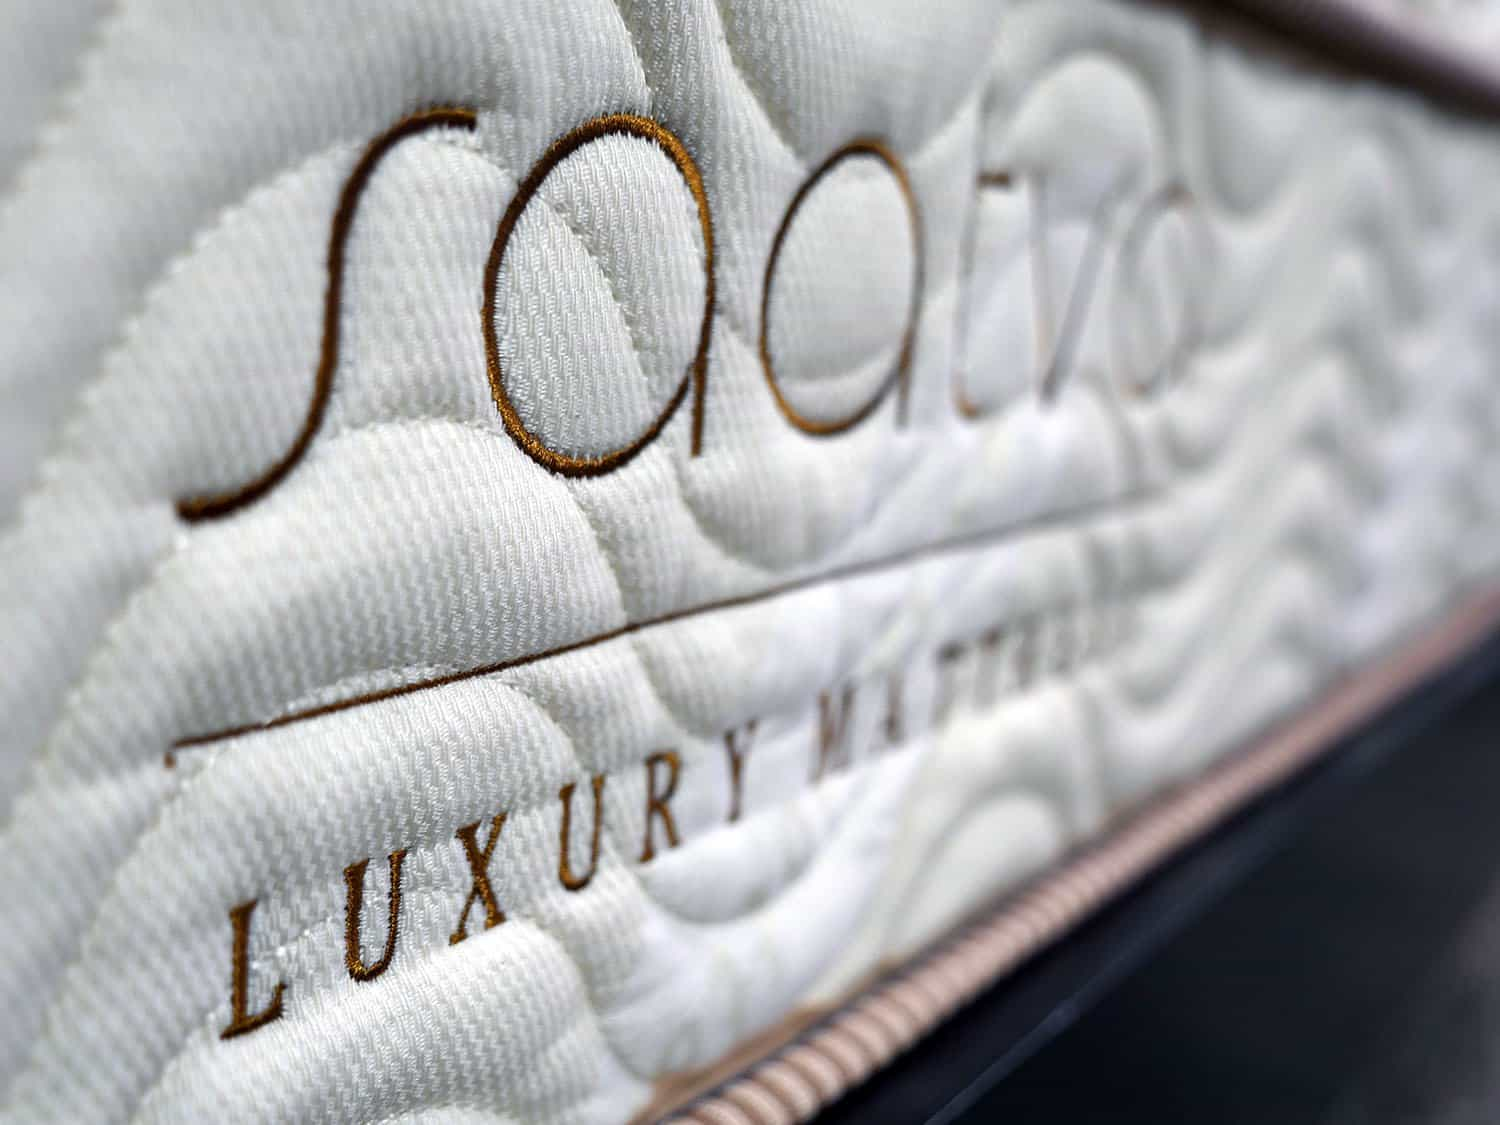 Ultra close up shot of the Saatva mattress logo